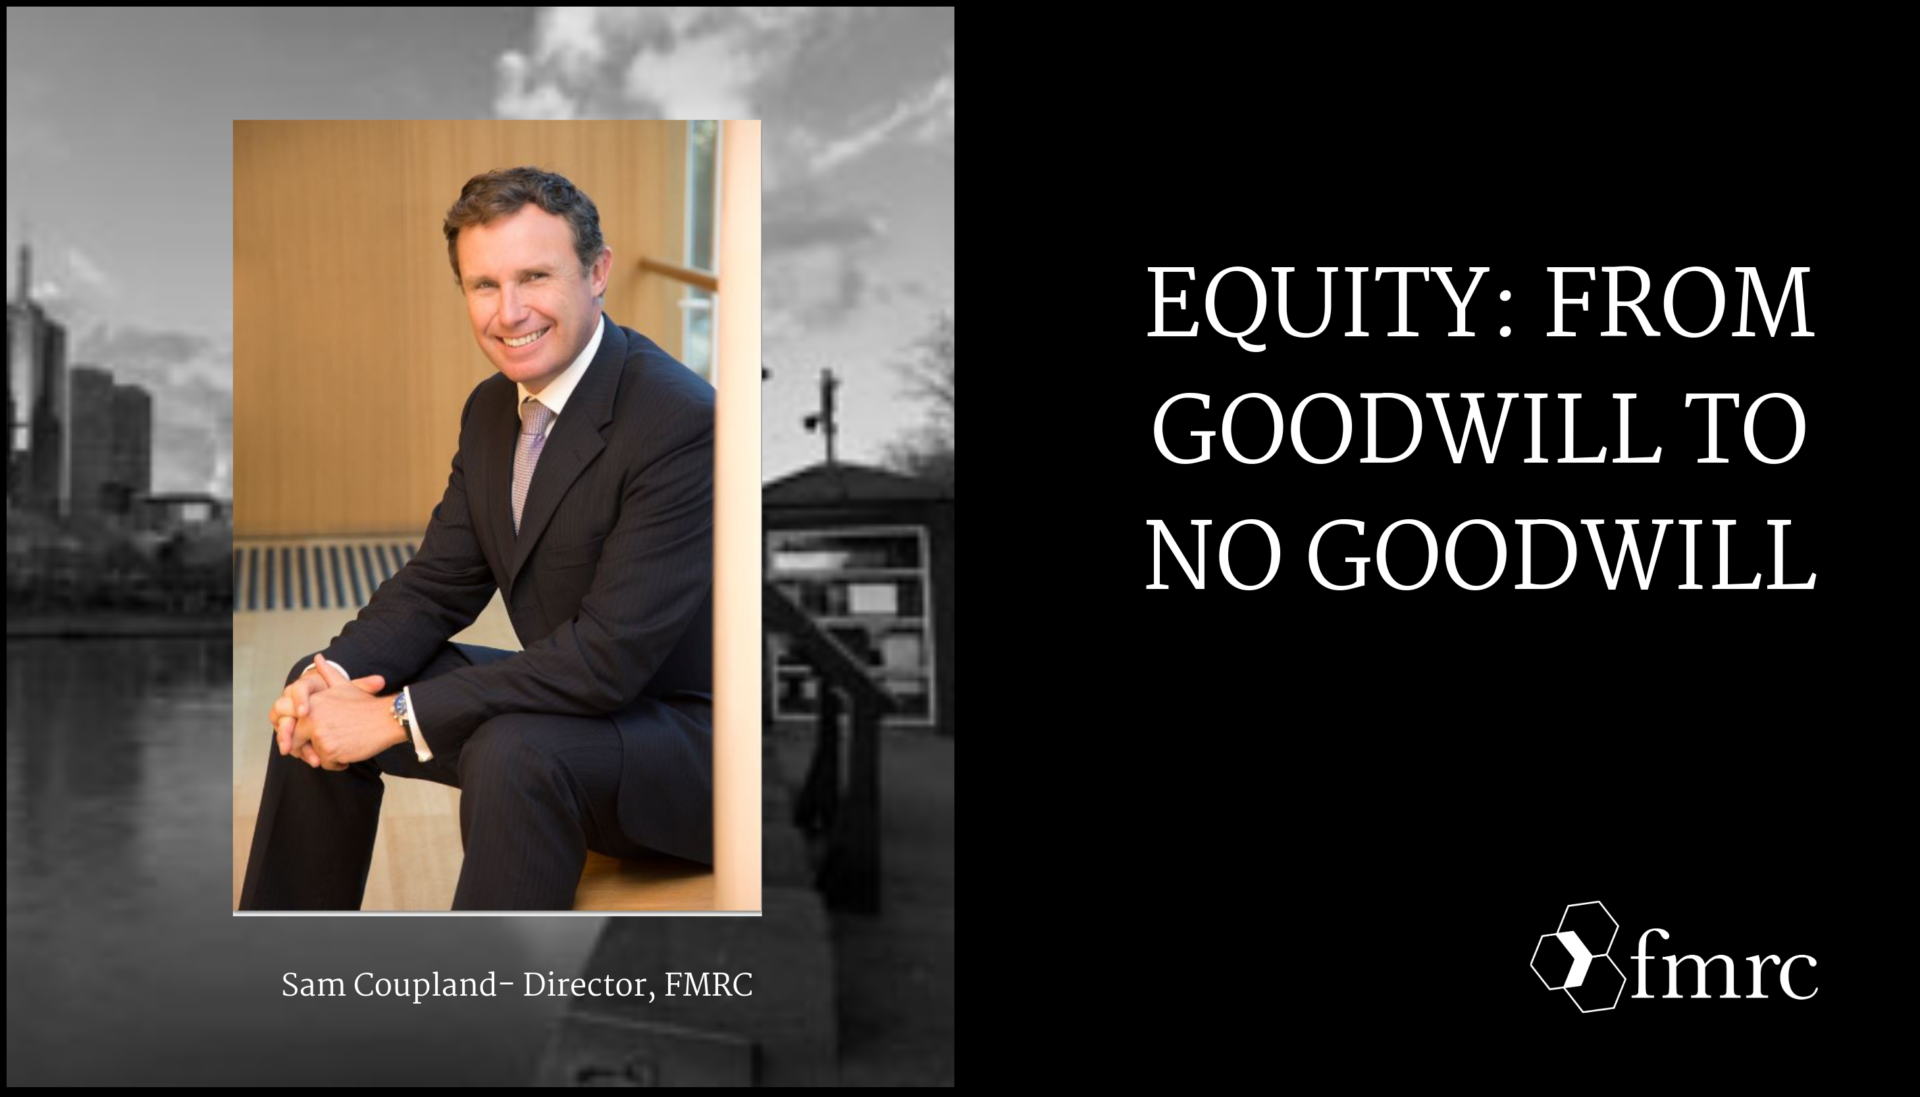 Equity: From Goodwill to no Goodwill